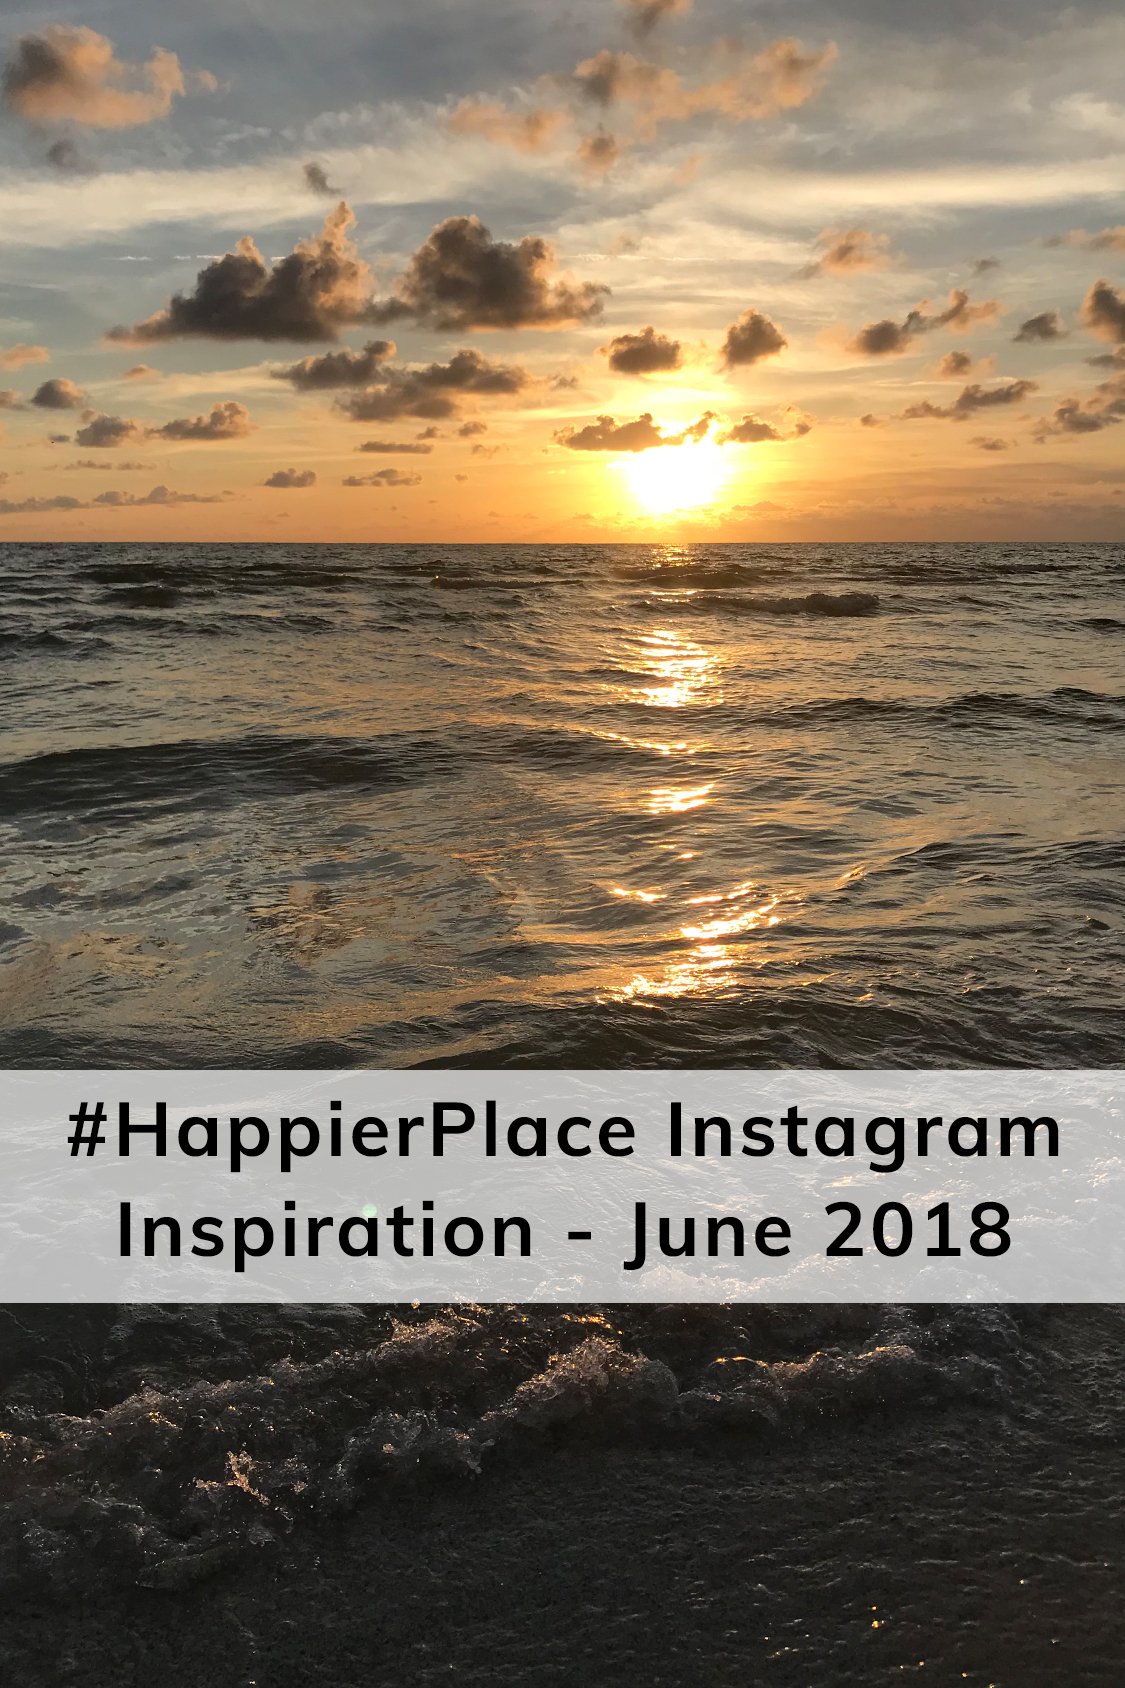 #HappierPlace Instagram Inspiration – June 2018